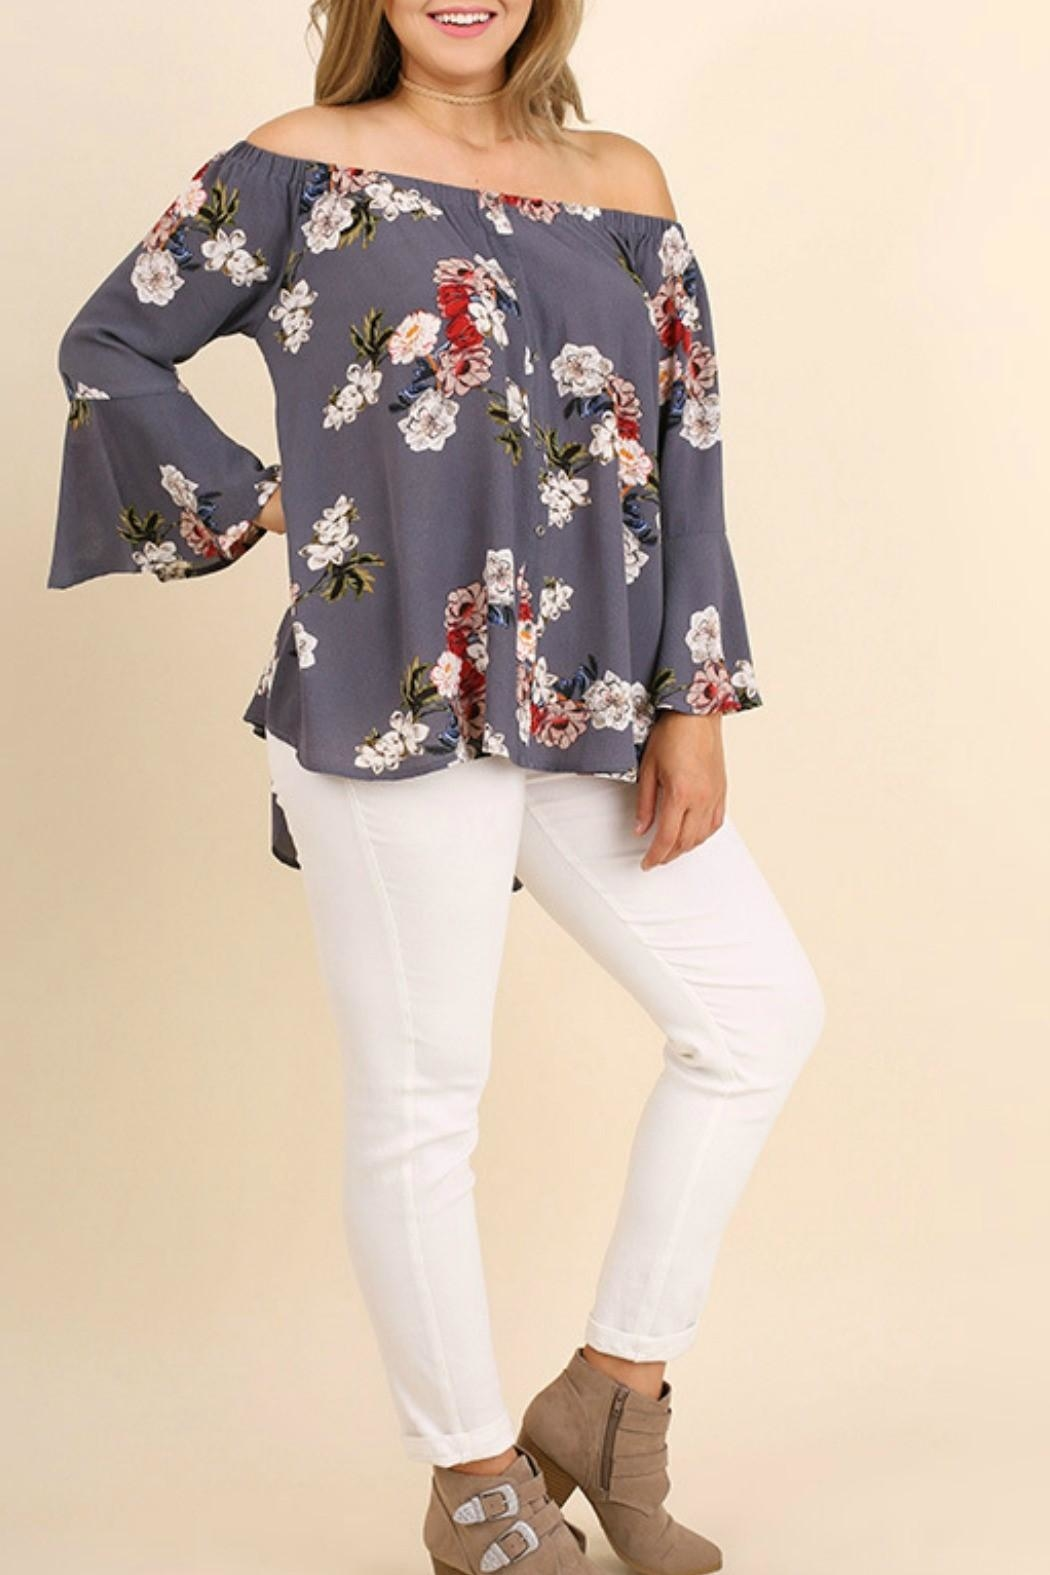 Umgee USA Grey Floral Top - Front Cropped Image